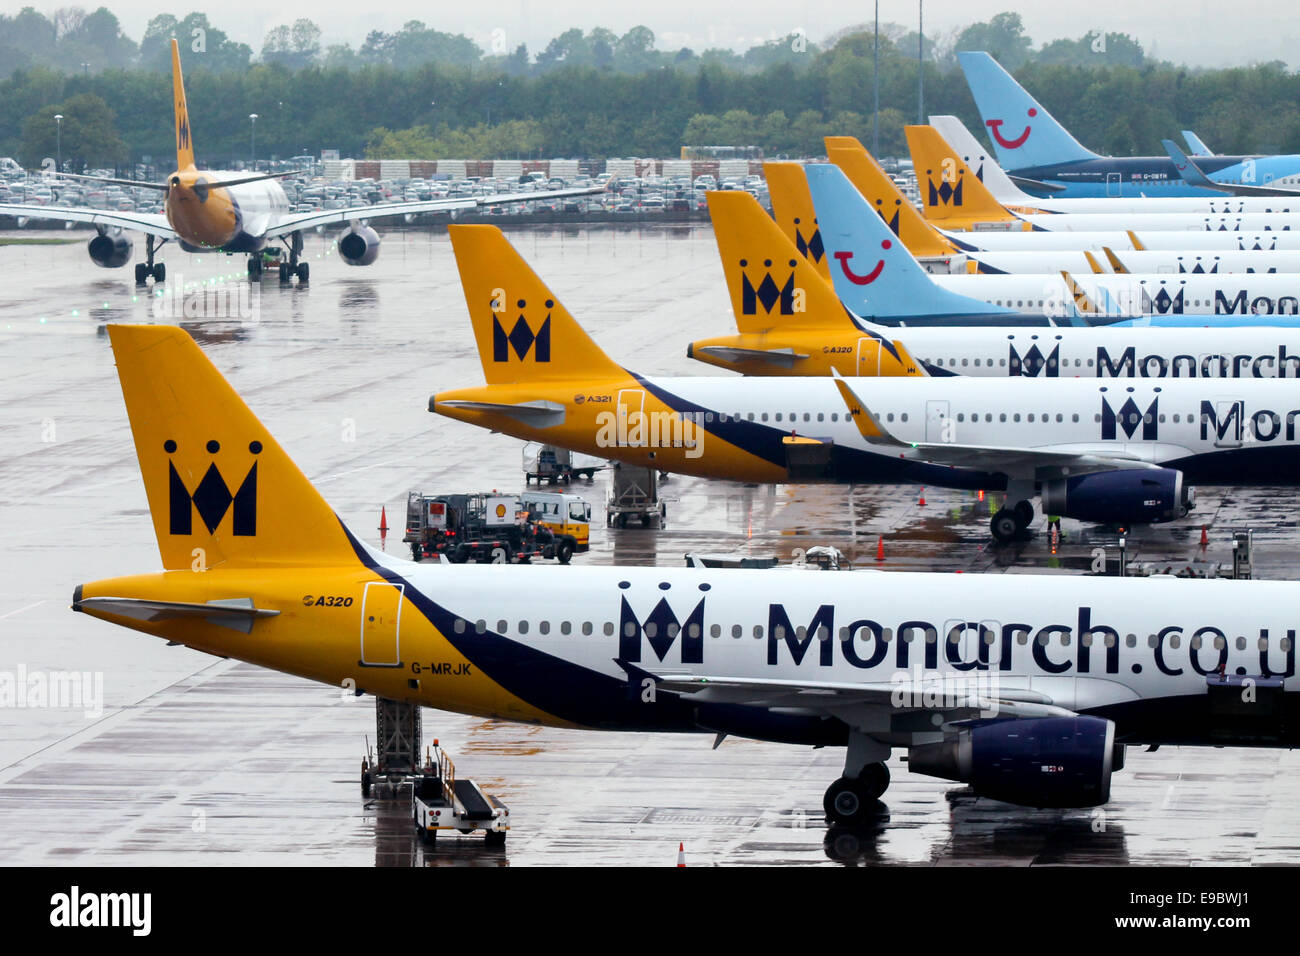 monarch-airlines-dominates-the-line-up-o